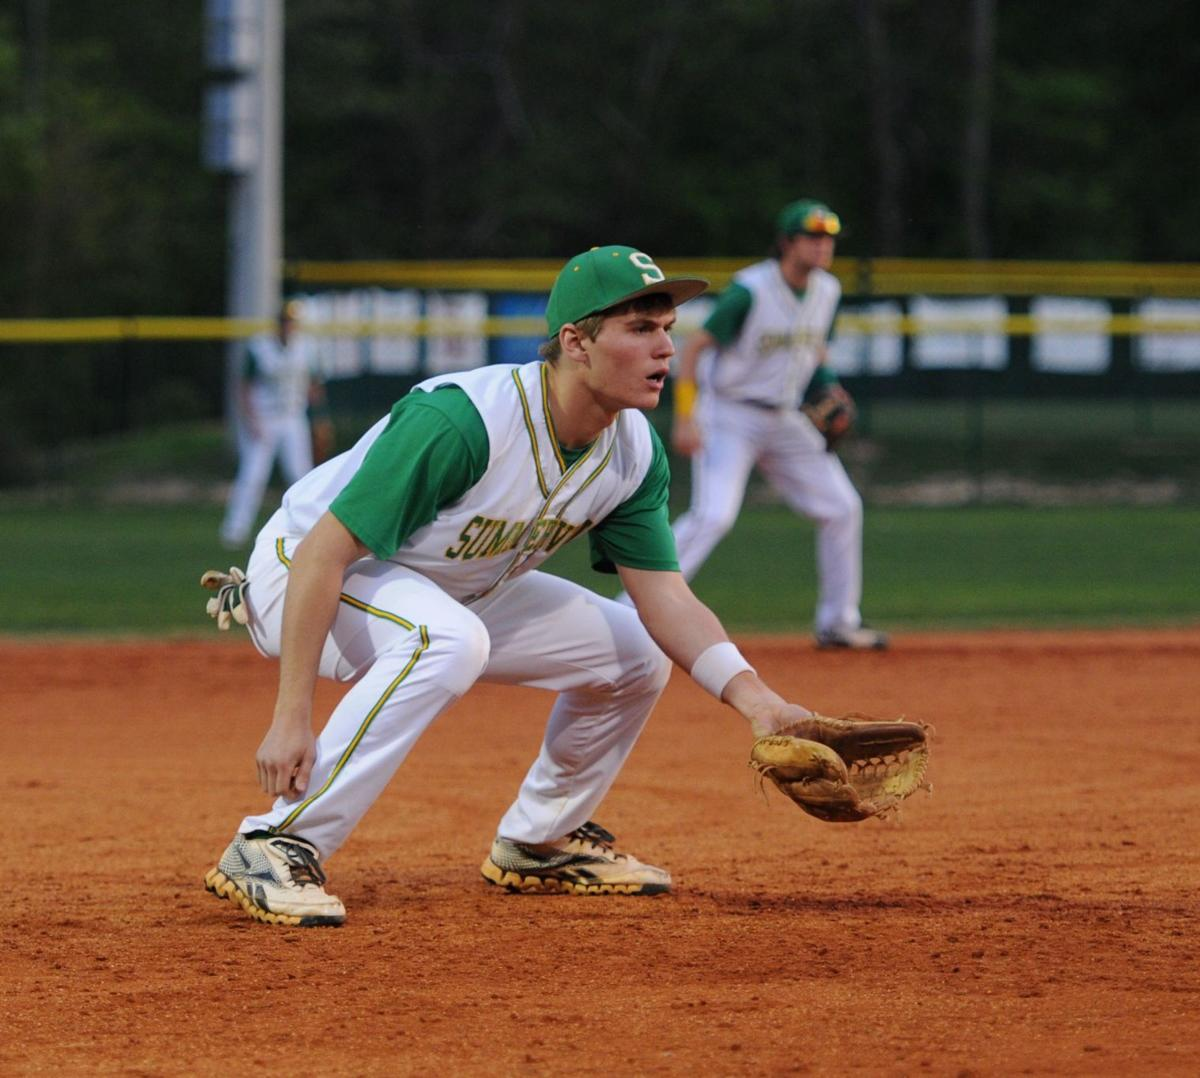 Green Wave aims for state title